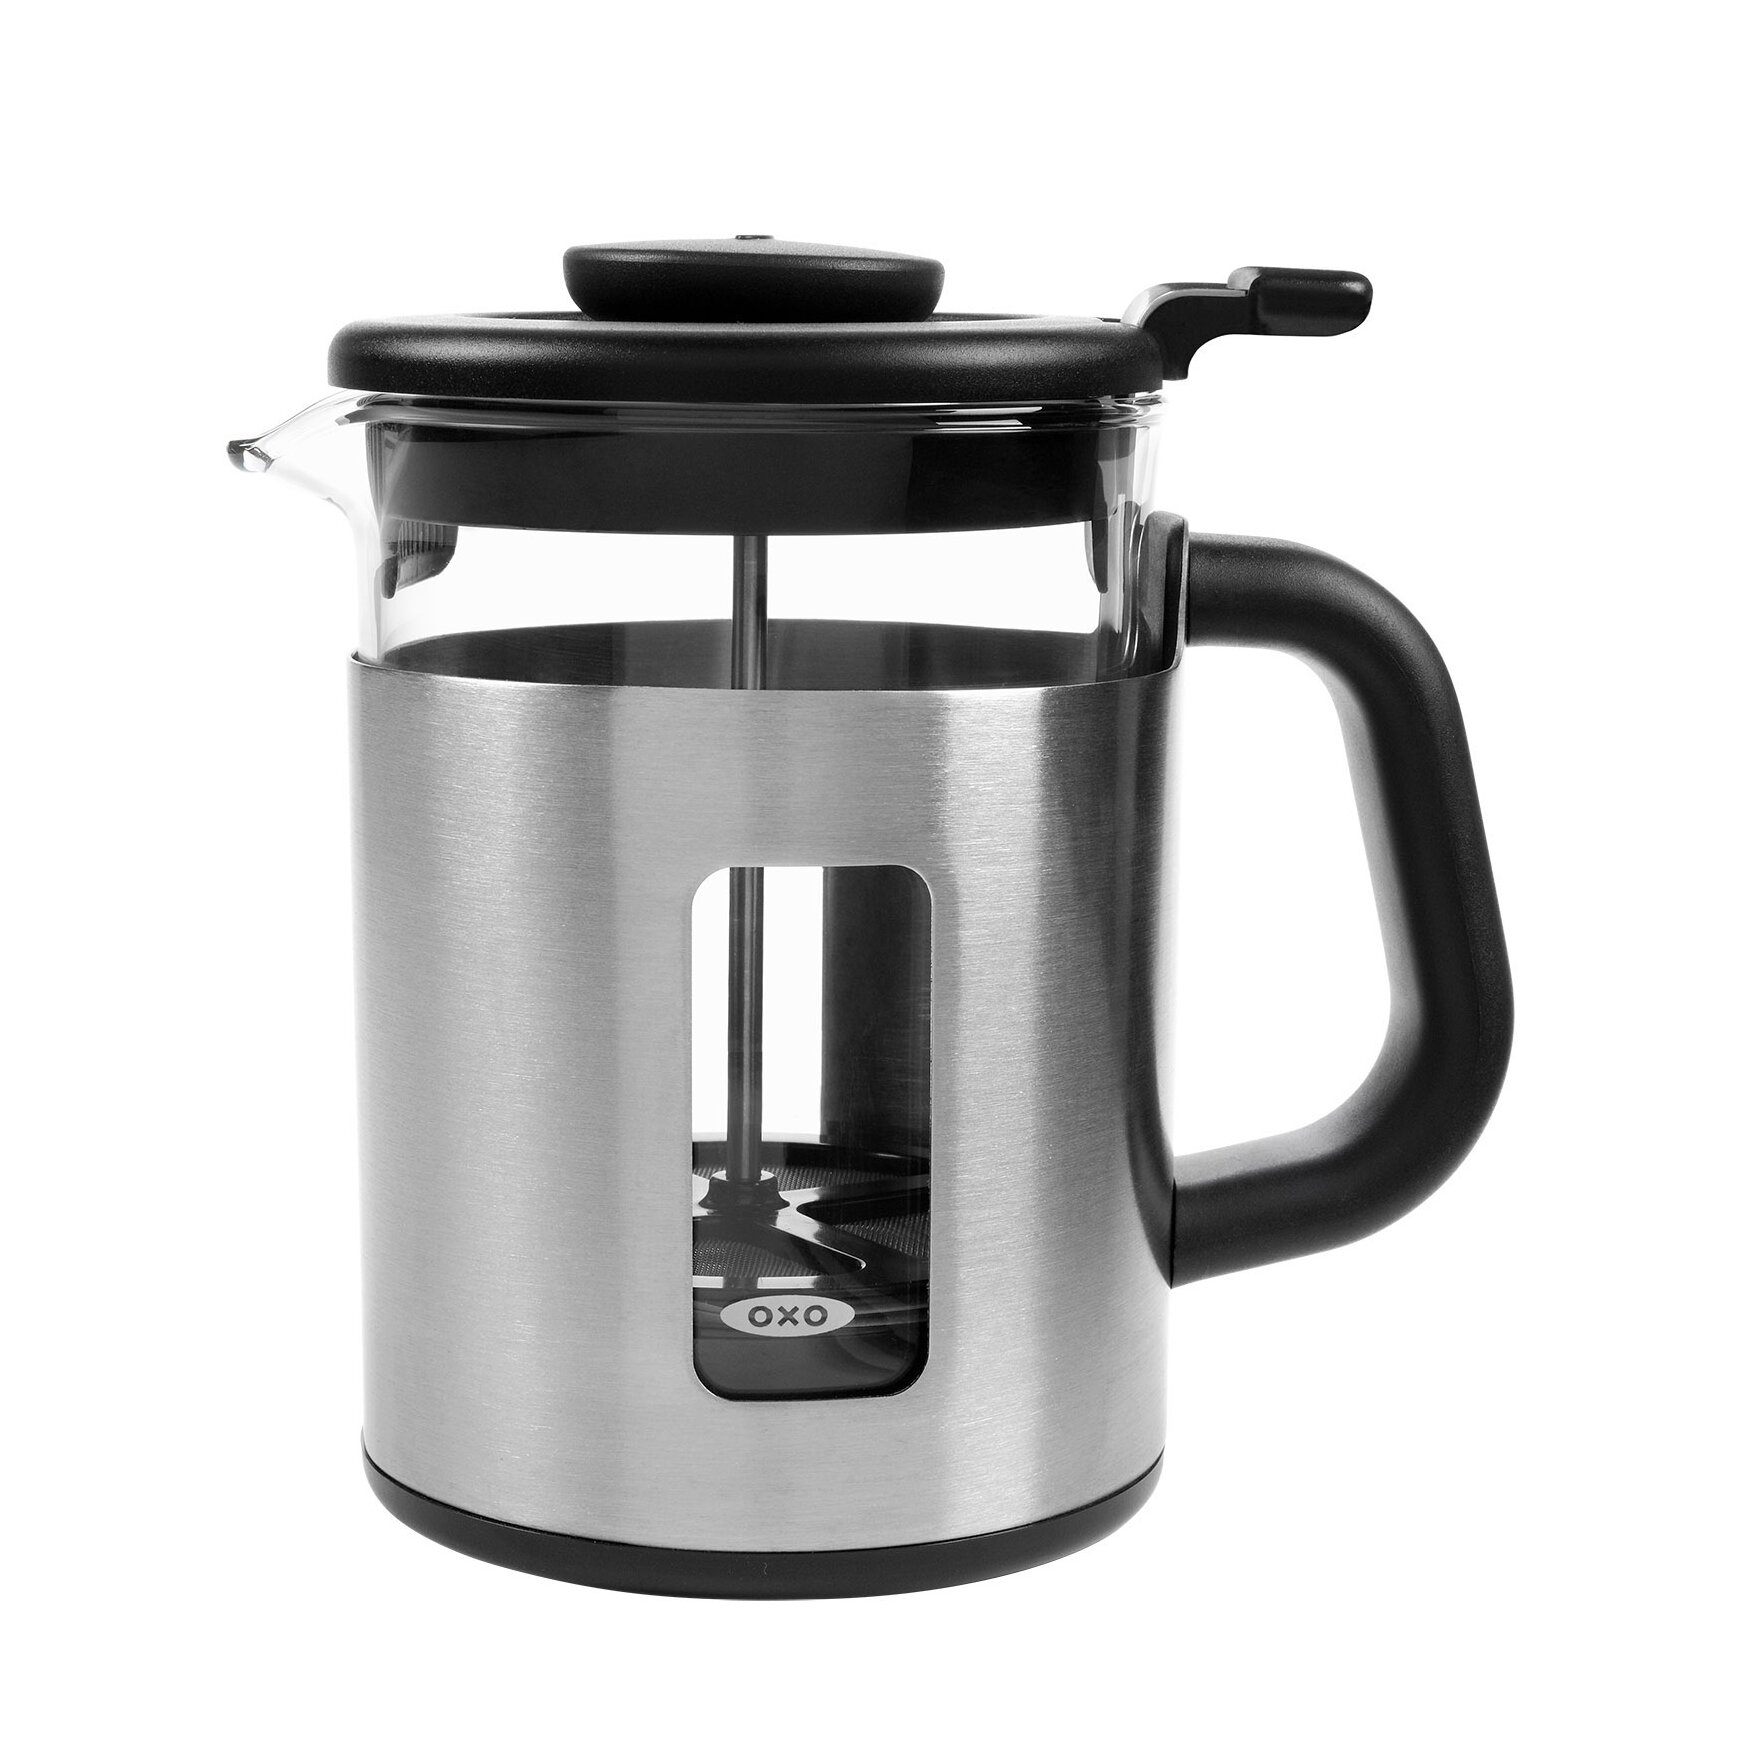 OXO Good Grips French Press Coffee Maker & Reviews Wayfair